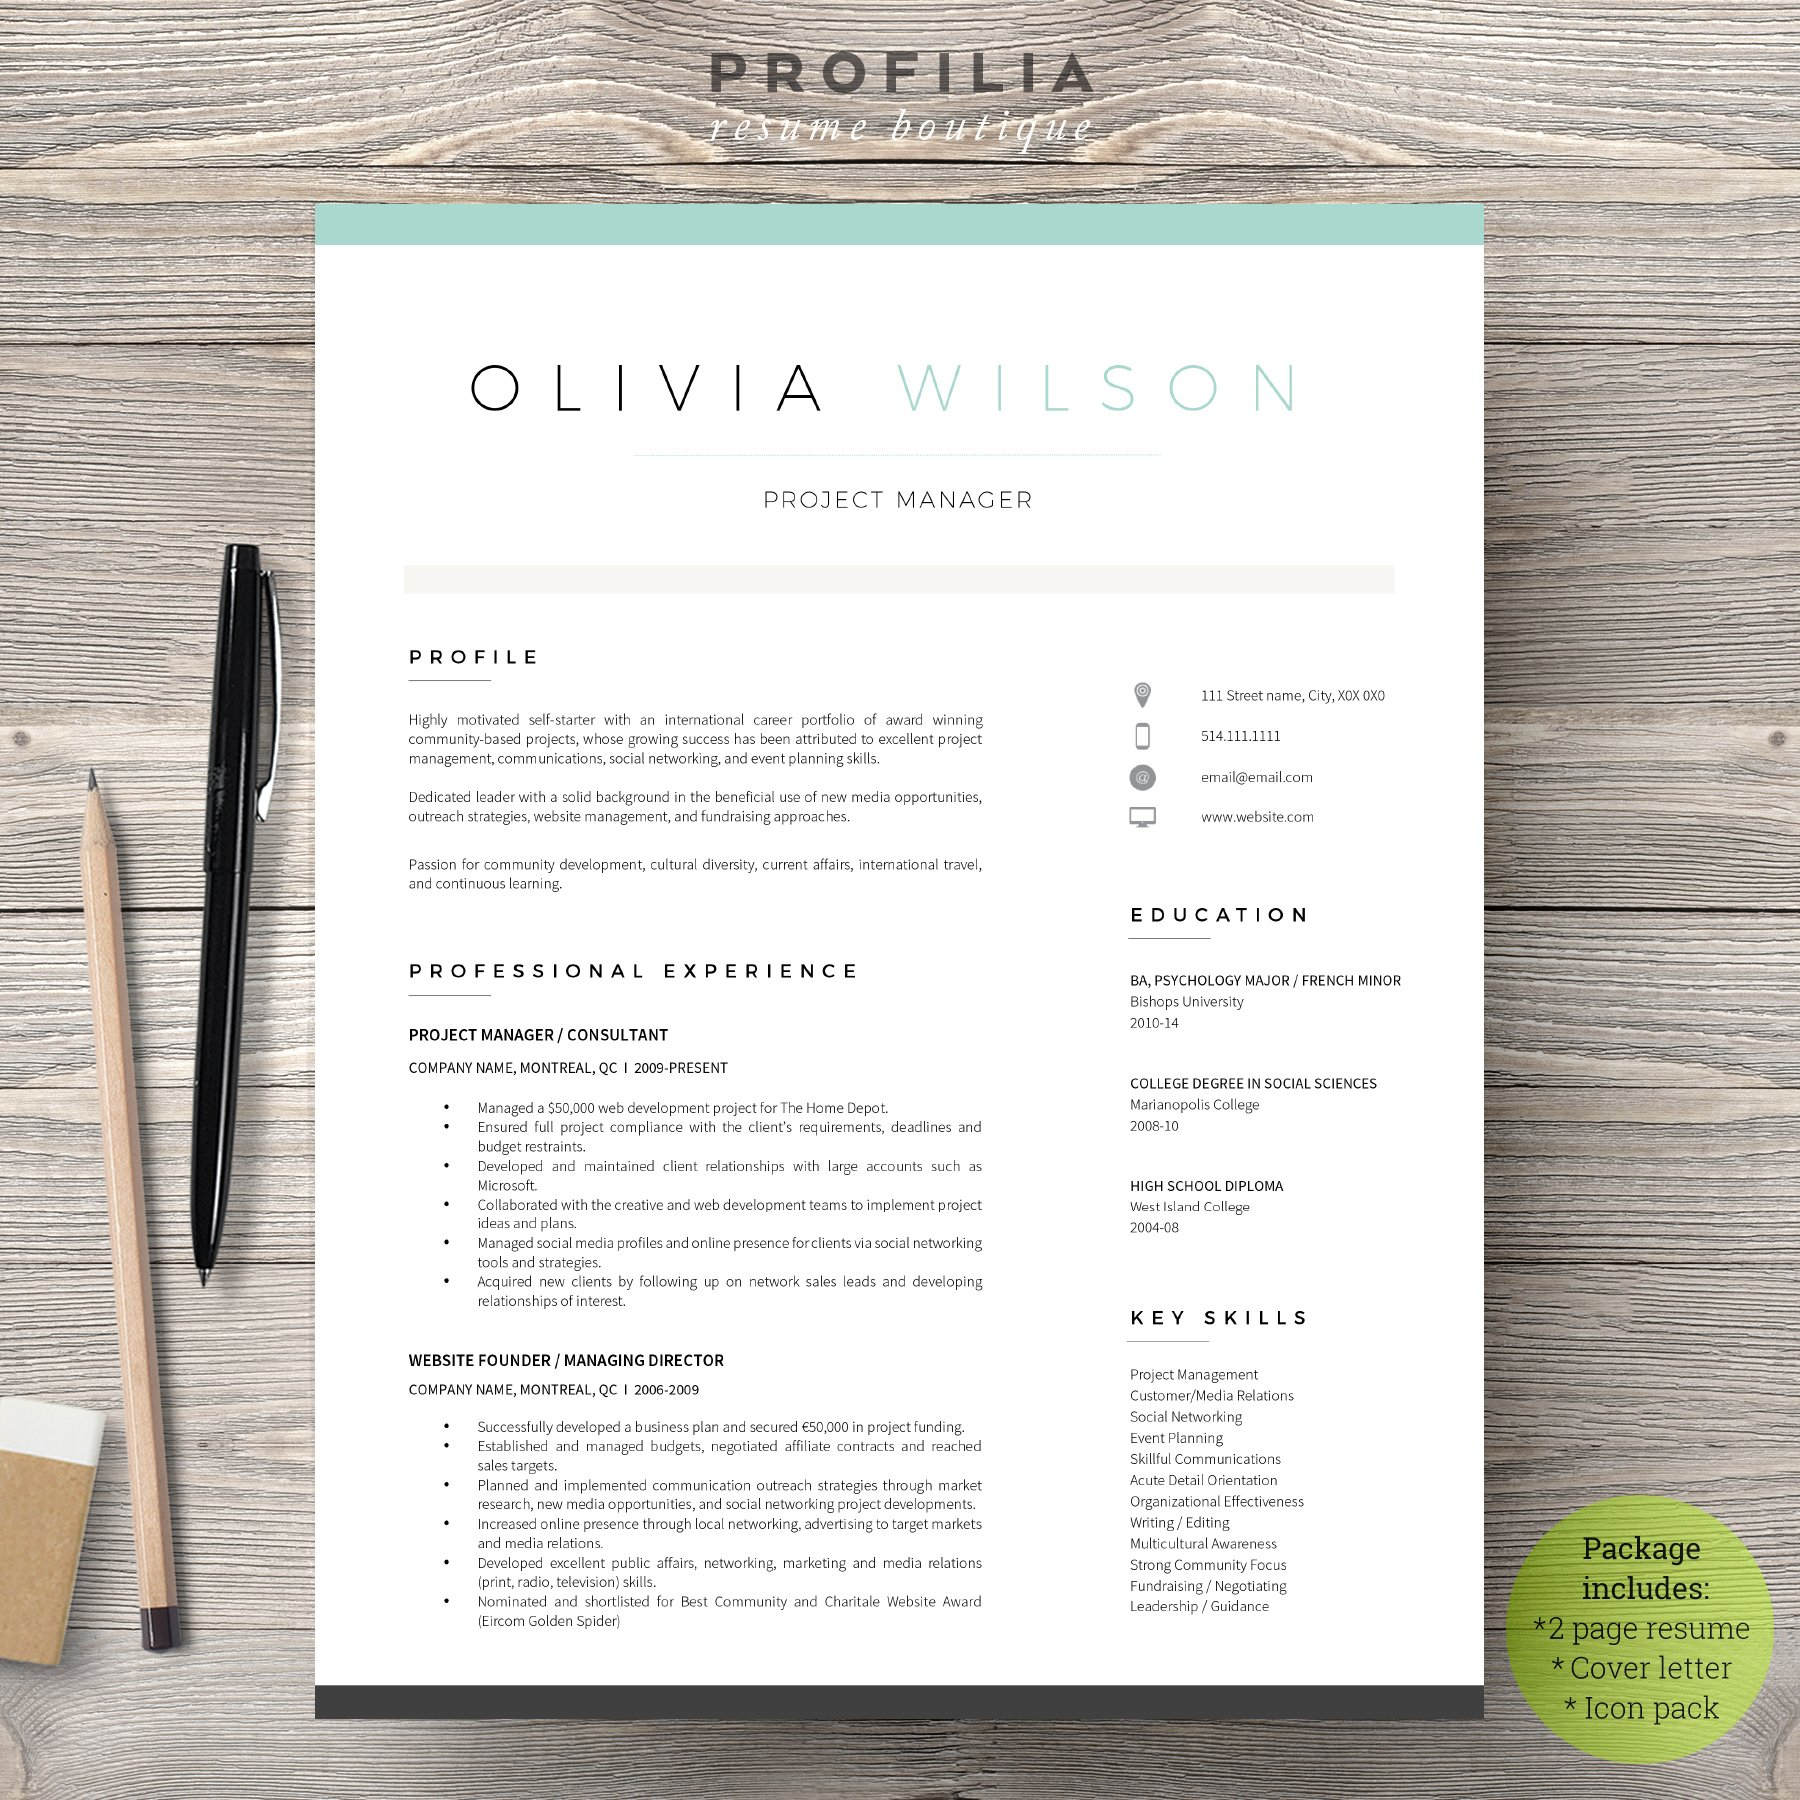 word resume cover letter template resume templates creative market - Cover Letter Template For Resume Free